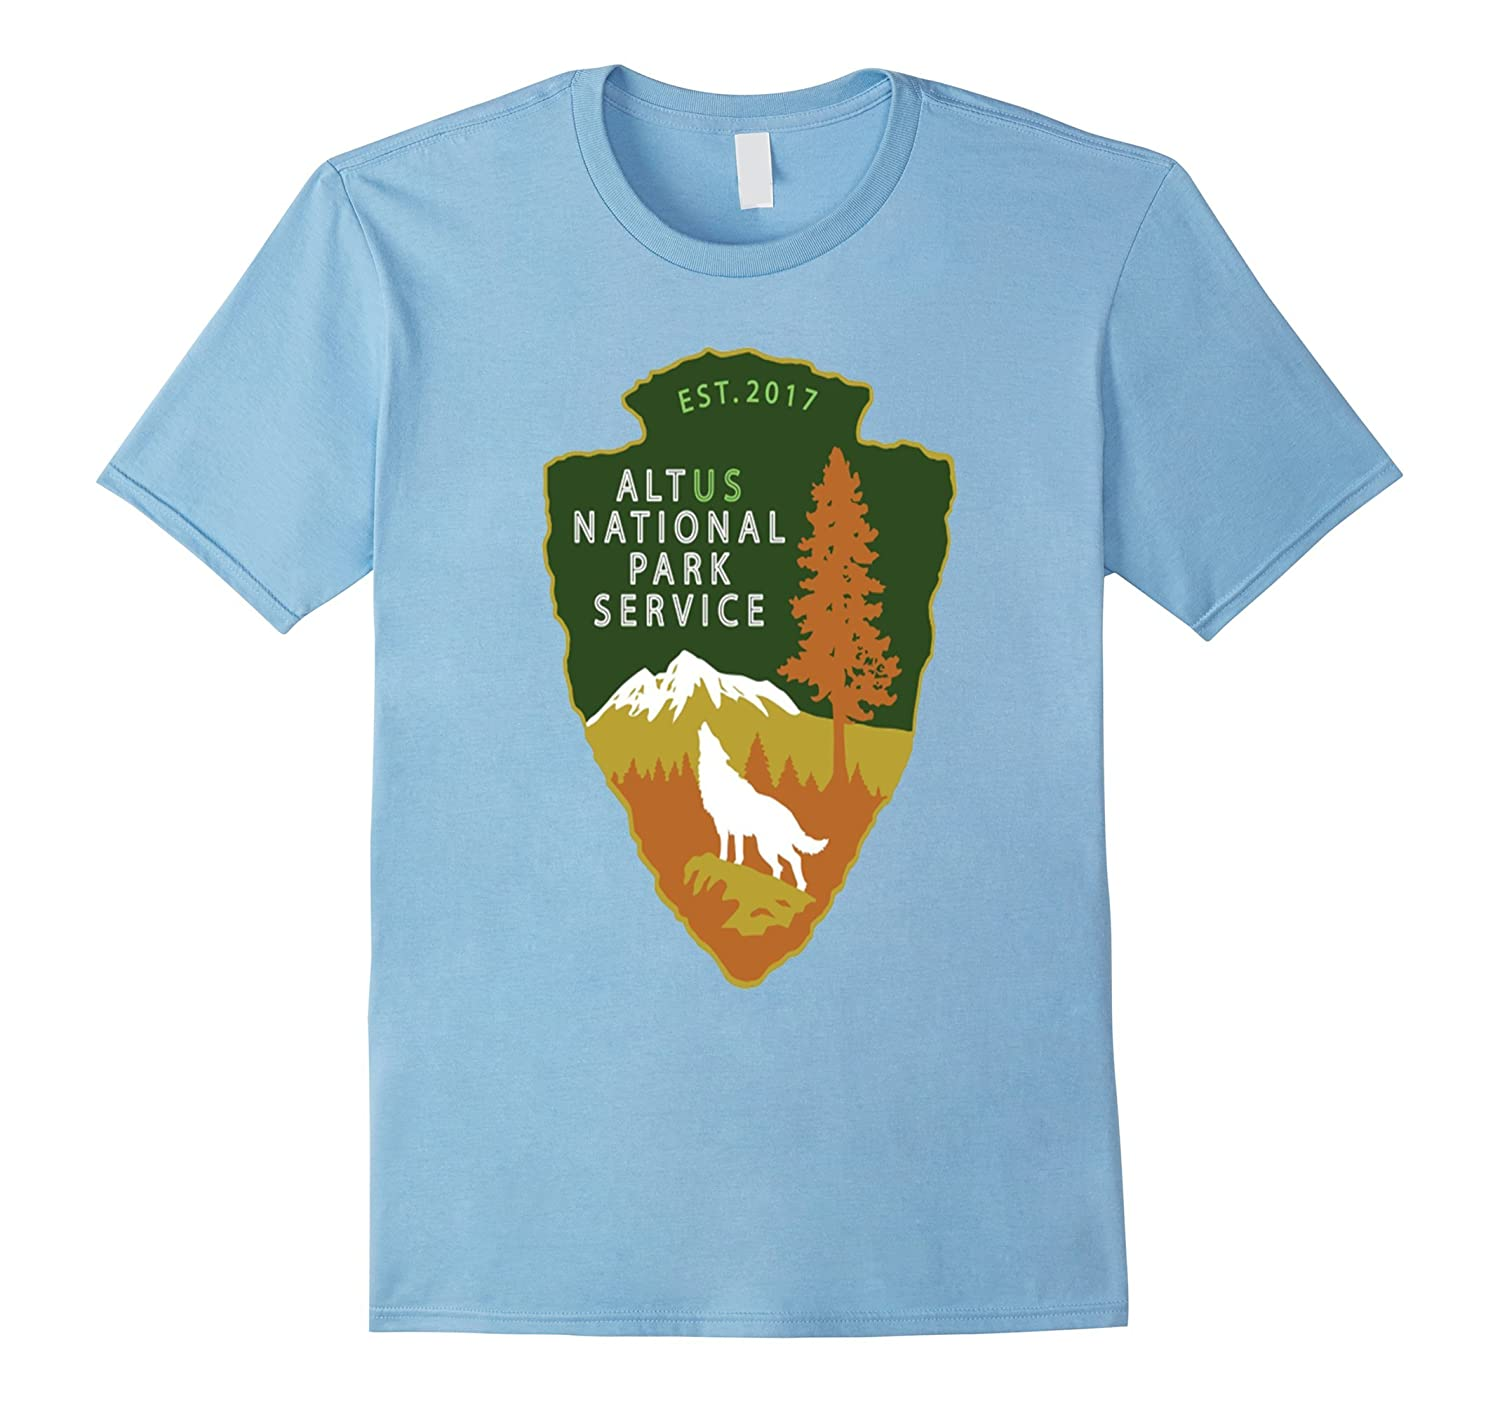 Alt Us Nationally Park Service 2017 Tshirt National Park Tee-TH